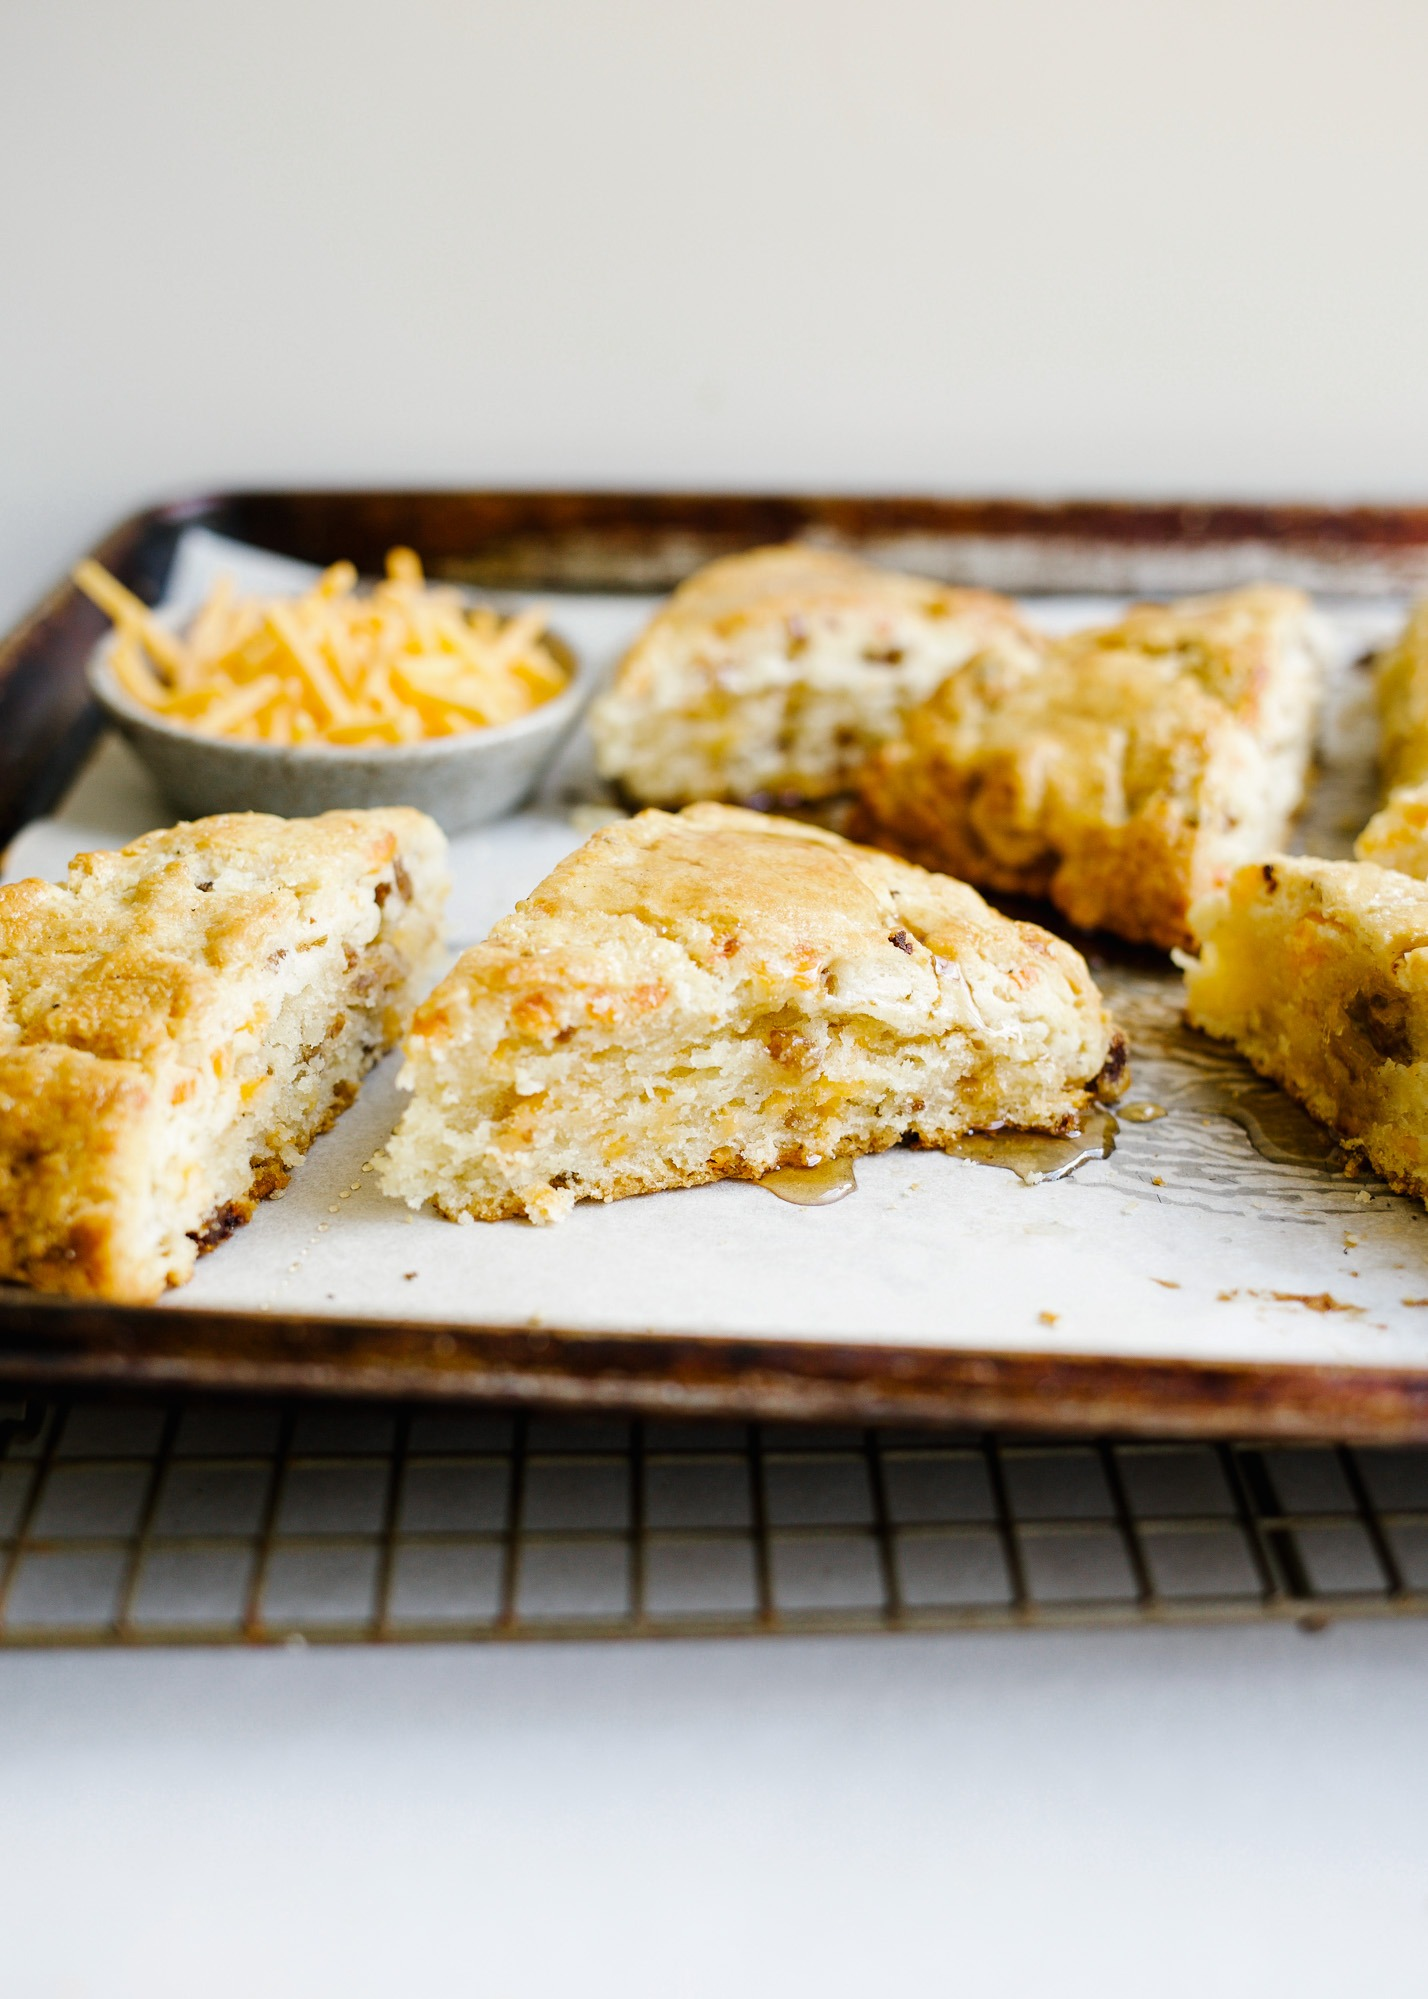 Cheddar Sausage Scones By Wood and Spoon blog. These are simple cream and butter scones sweetened with maple syrup and loaded with Italian sausage, cheddar cheese, and black pepper. These make for a delicious savory breakfast pastry or option for the meat lovers at your table. Learn how to make simple scones for brunch on thewoodandspoon.com